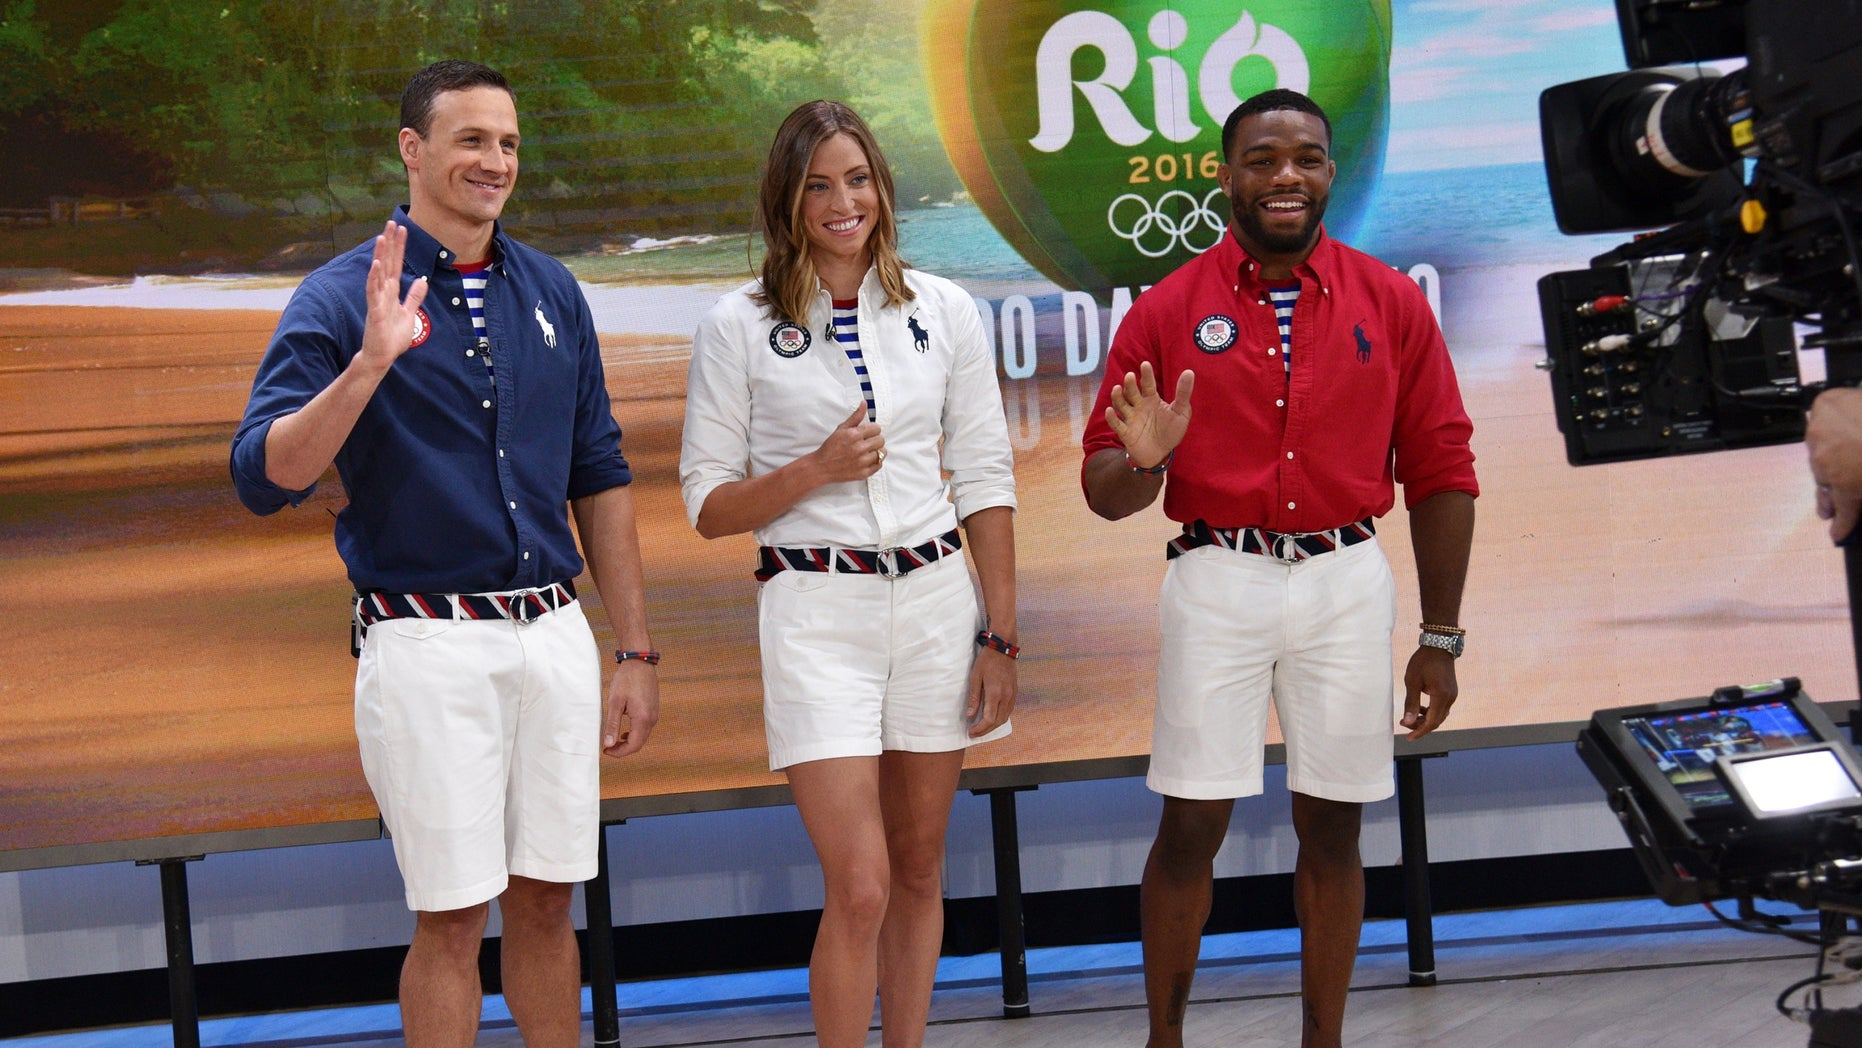 U.S. Olympic athletes, from left, Ryan Lochte, Haley Anderson and Jordan Burroughs.